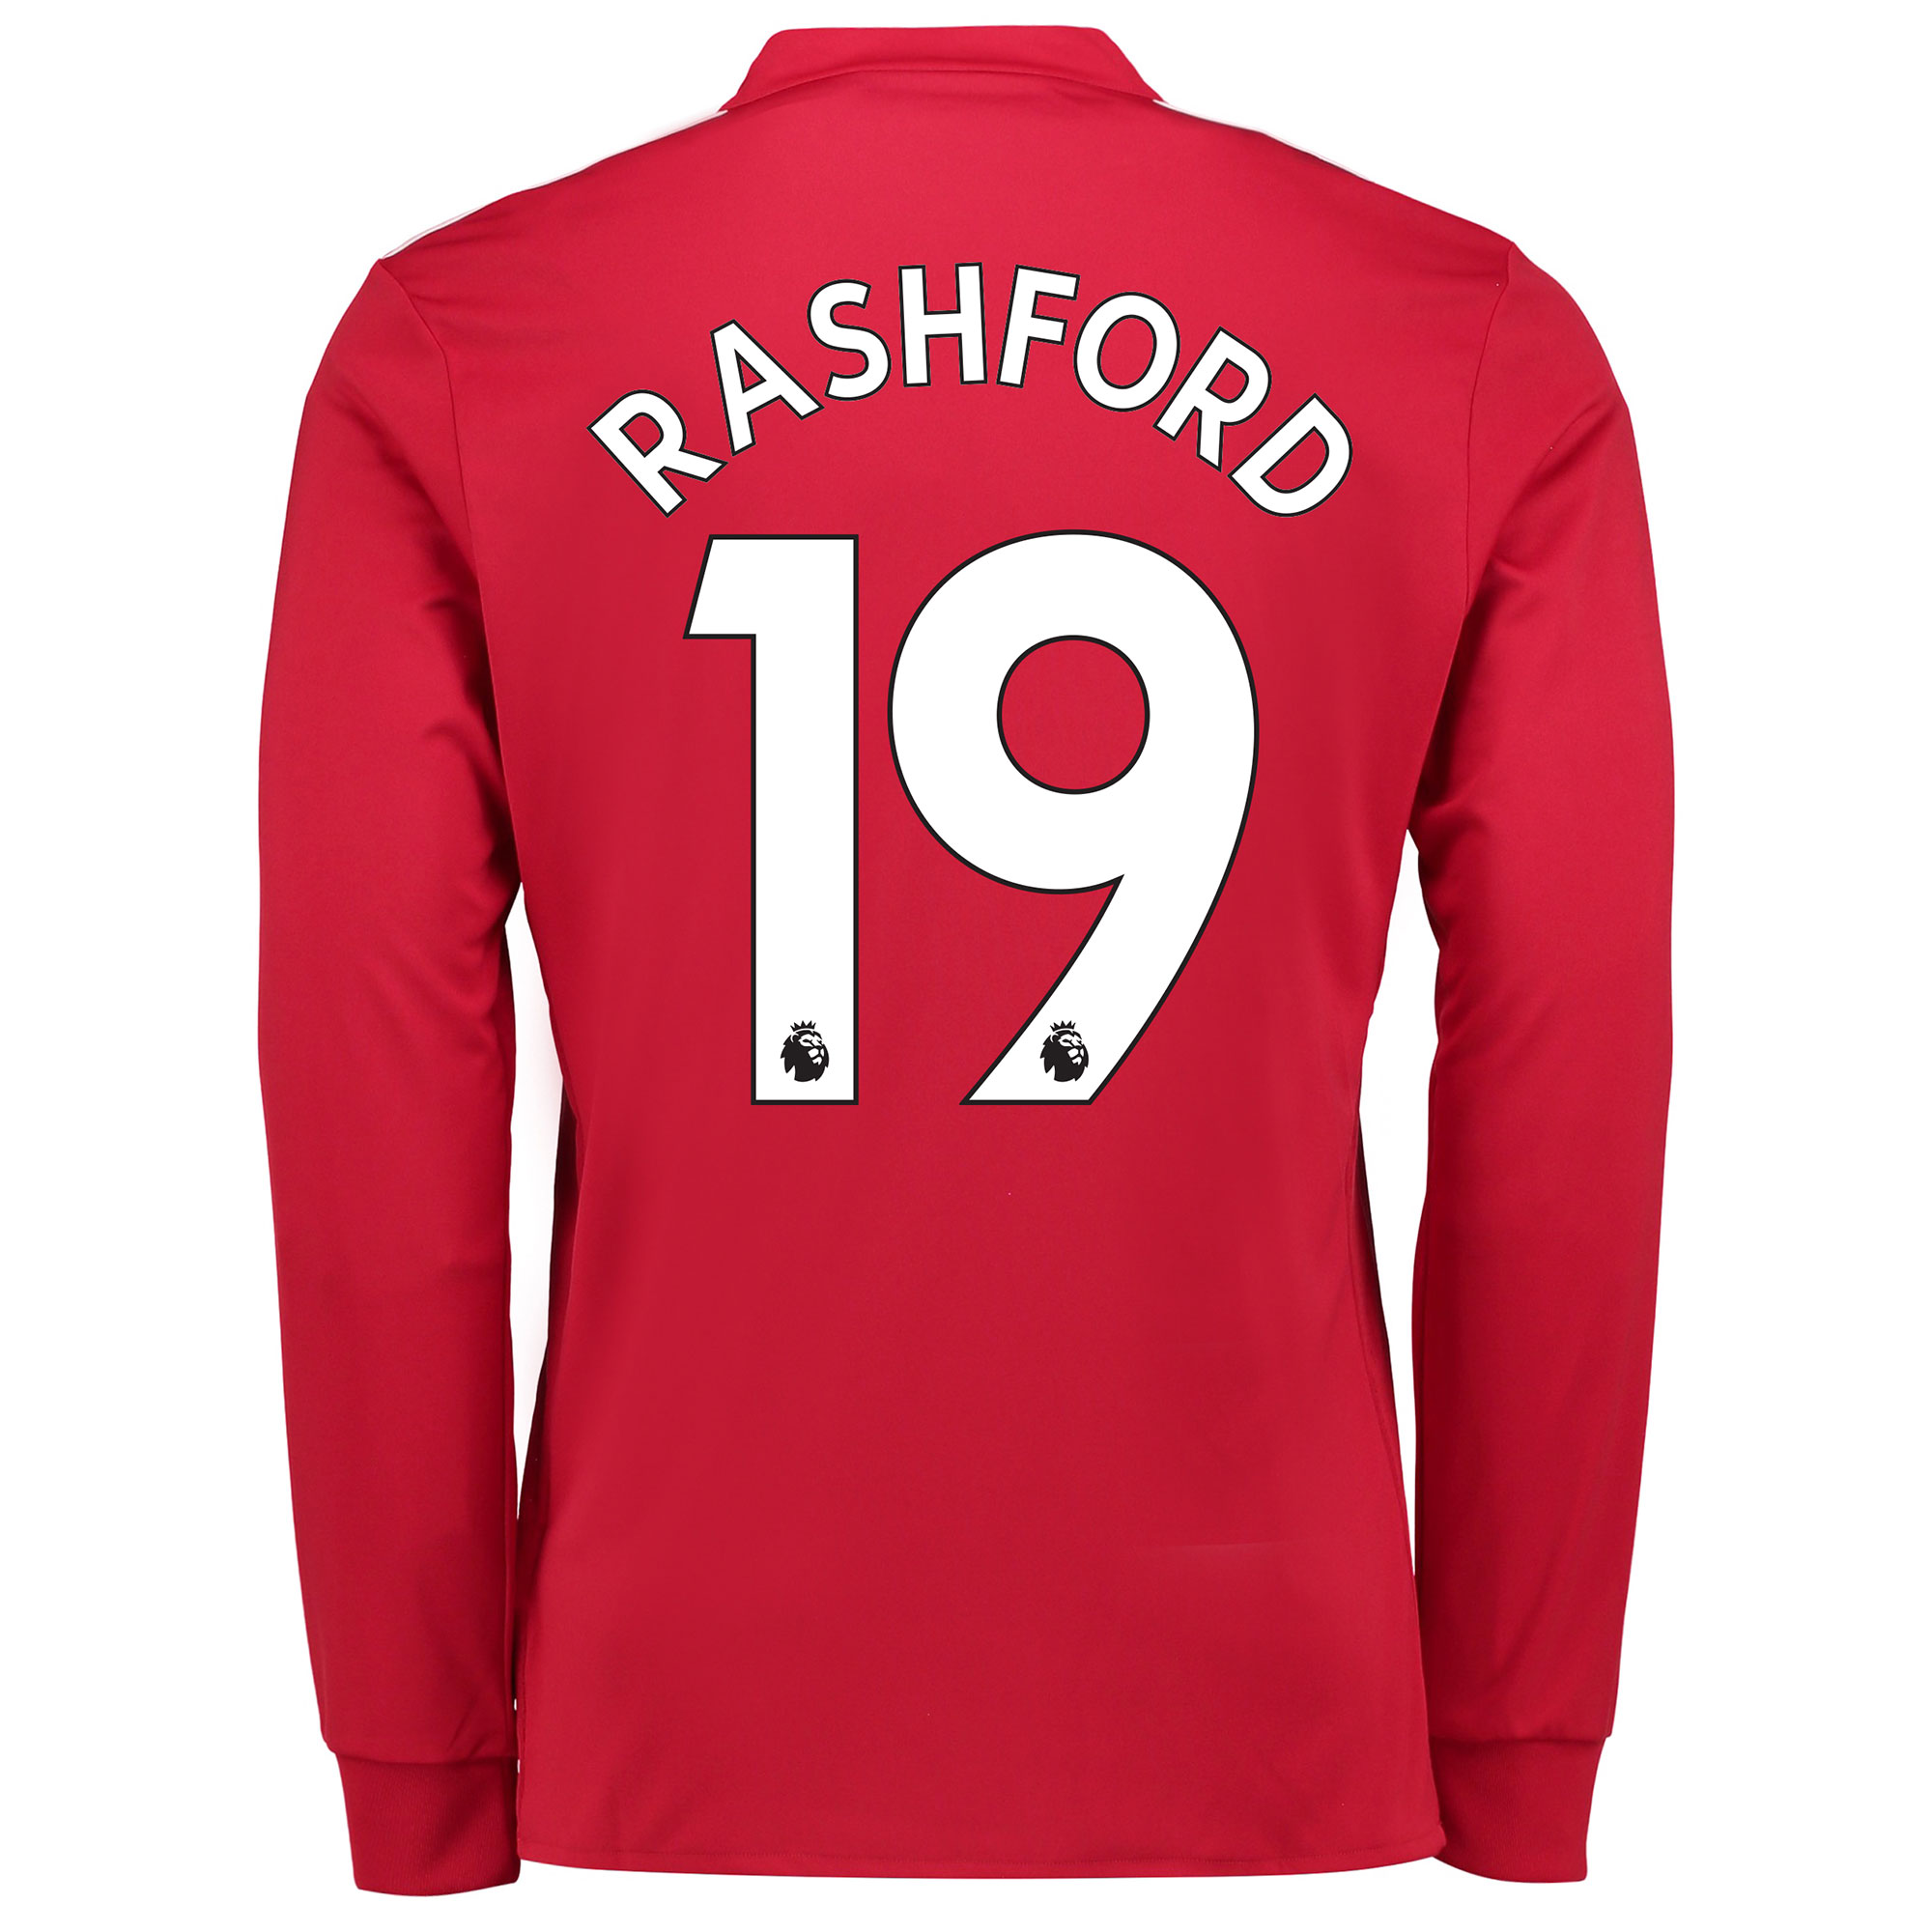 Manchester United Home Shirt 2017-18 - Kids - Long Sleeve with Rashfor